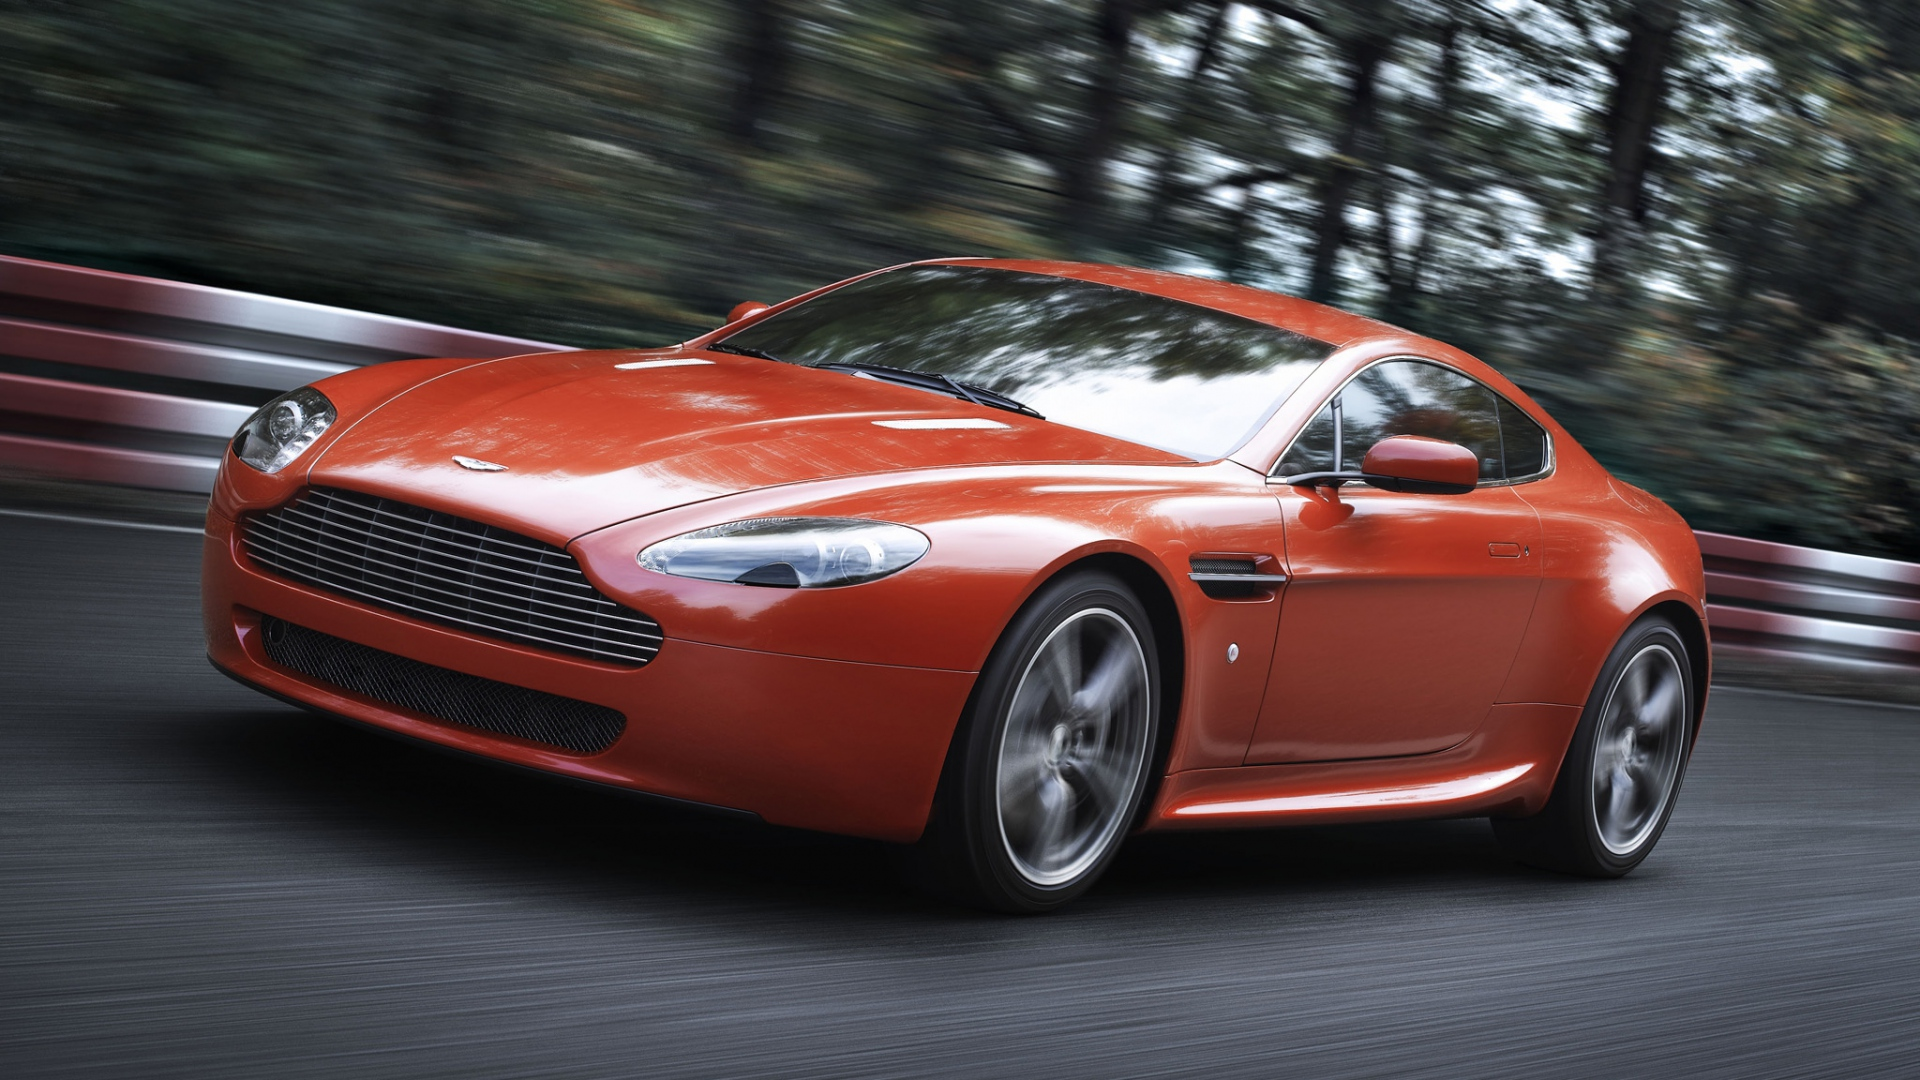 Download Wallpaper 1920x1080 Aston Martin V8 Vantage 2008 Red Front View Speed Trees Full Hd 1080p Hd Background